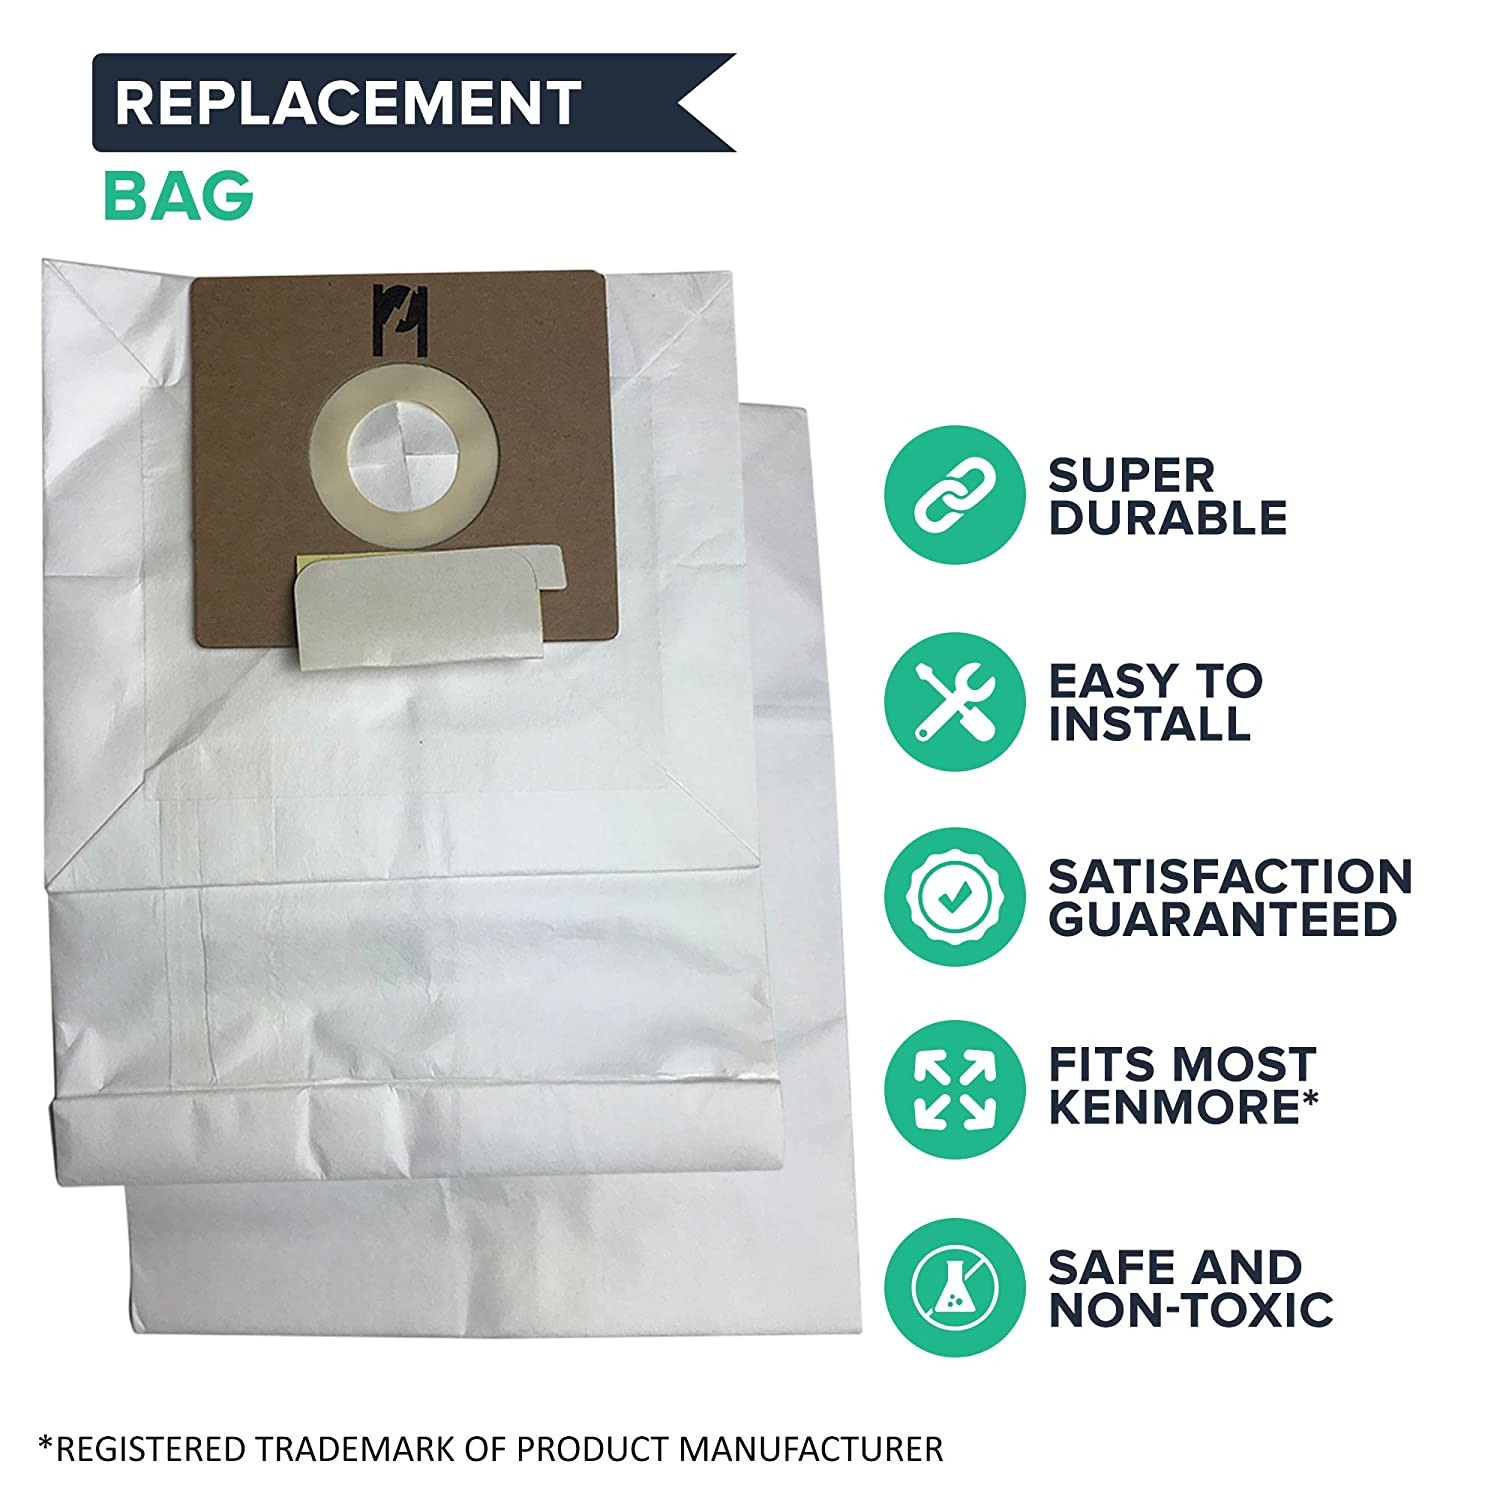 634875 /& 115.2496210 Think Crucial 9 Replacements for Kenmore Type B Cloth Bags Fit Kenmore /& Oreck Canister Vacuums 24196 Compatible With Part # 85003